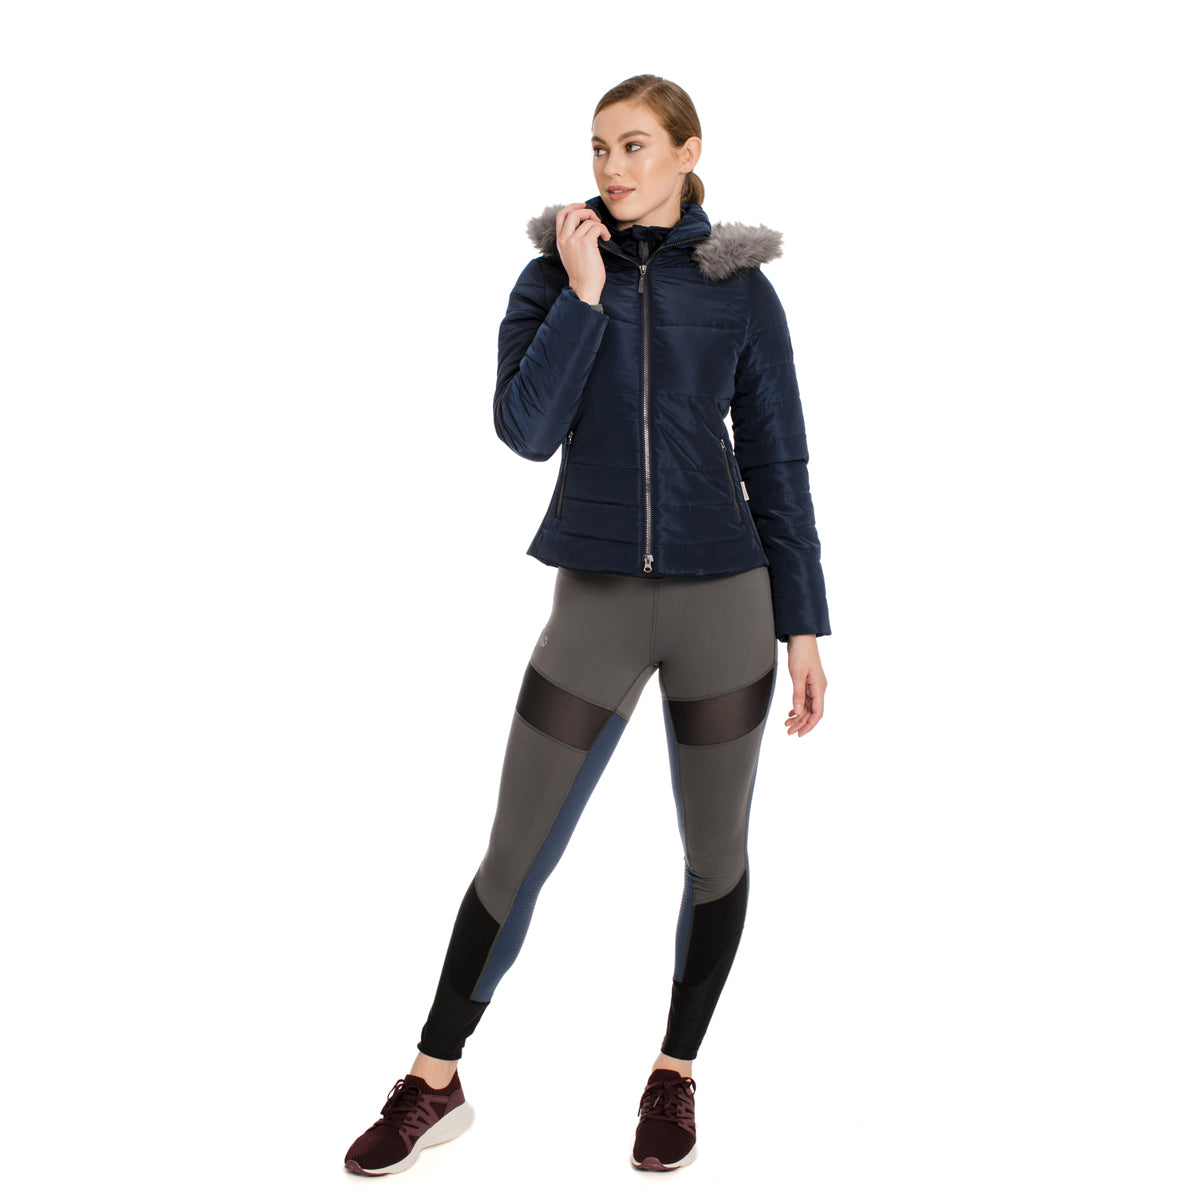 Horseware Women's Alexa Padded Jacket